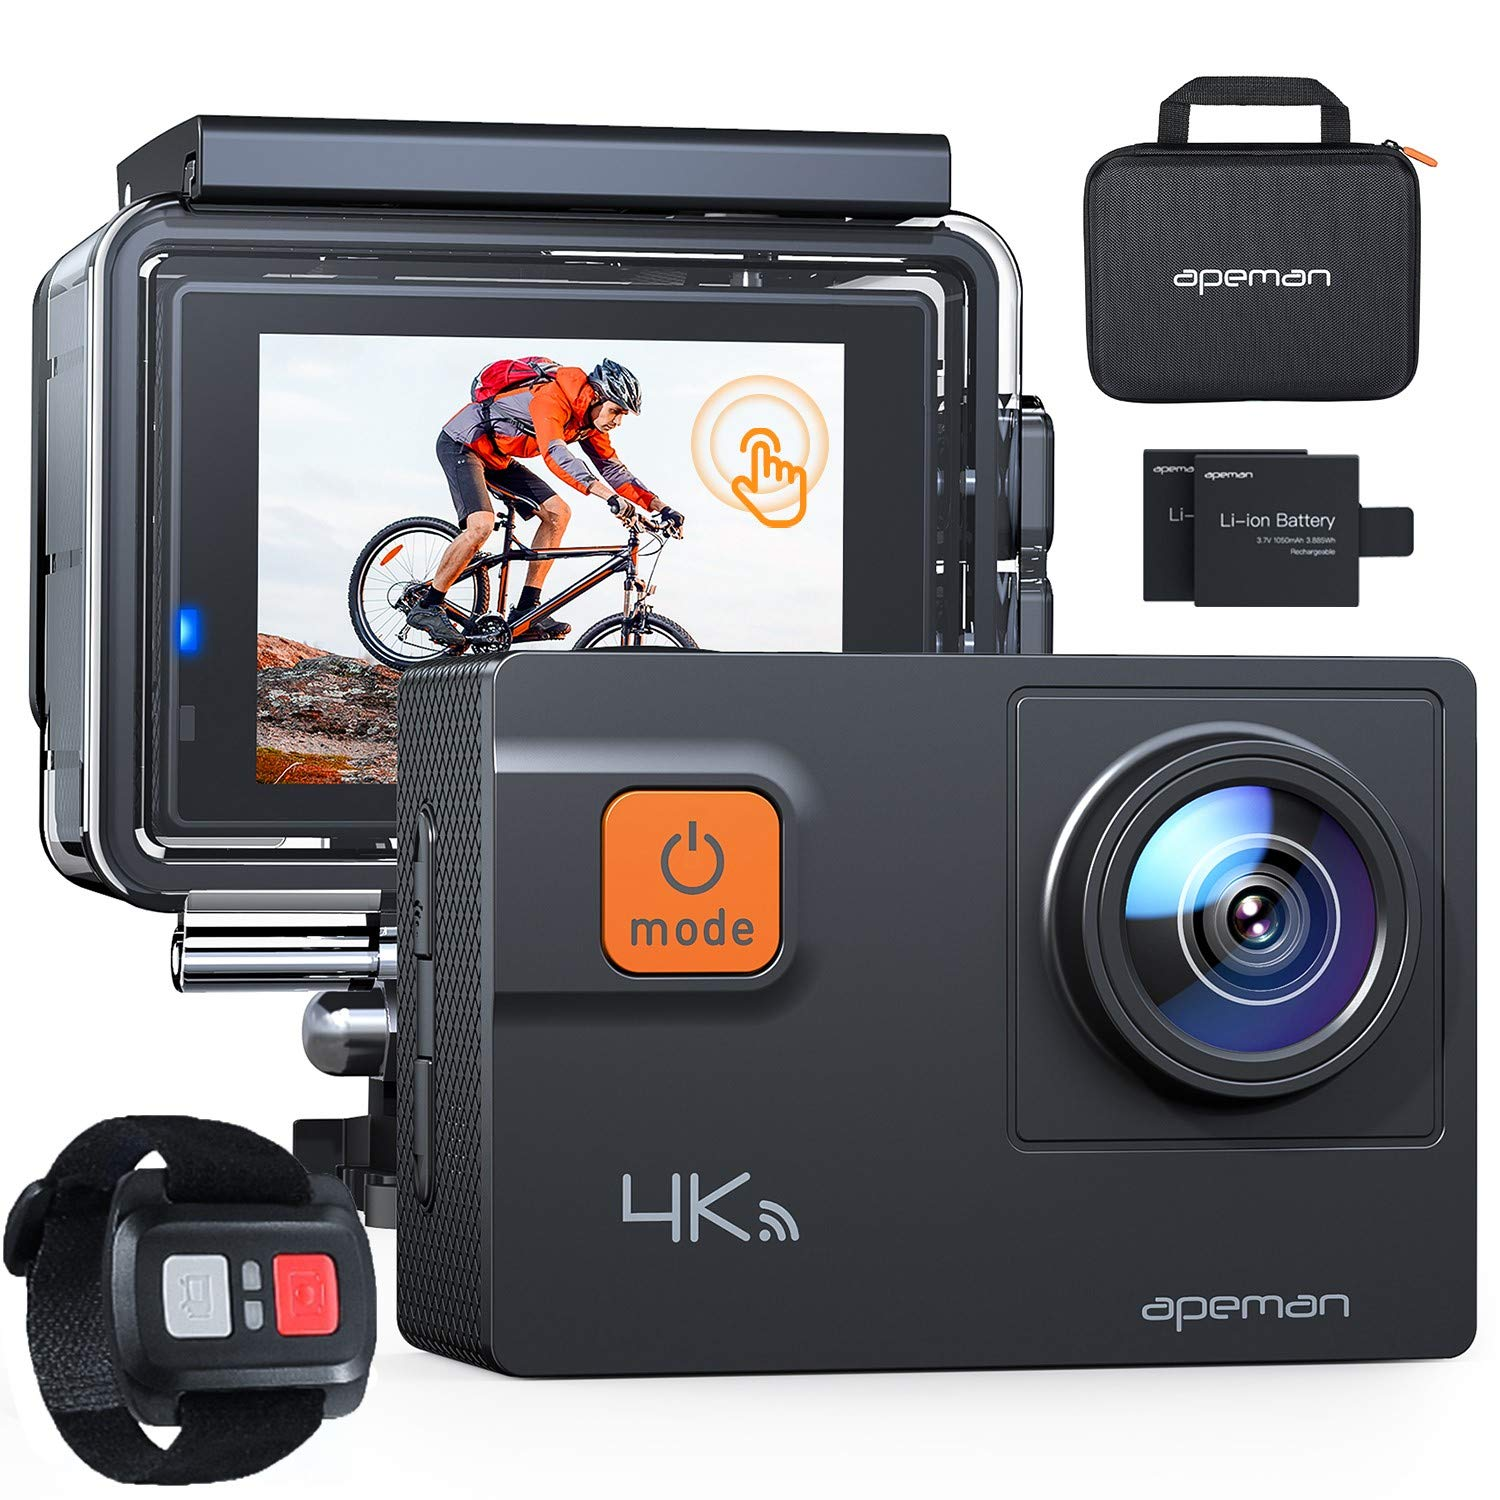 APEMAN 4K 60FPS Action Camera A87,Touch Screen 20MP Wi-Fi EIS 8X Zoom Remotor Control Sports Cam 40M Waterproof Underwater Vlog Camcoder with Mounting Accessories Kit and Carrying Case